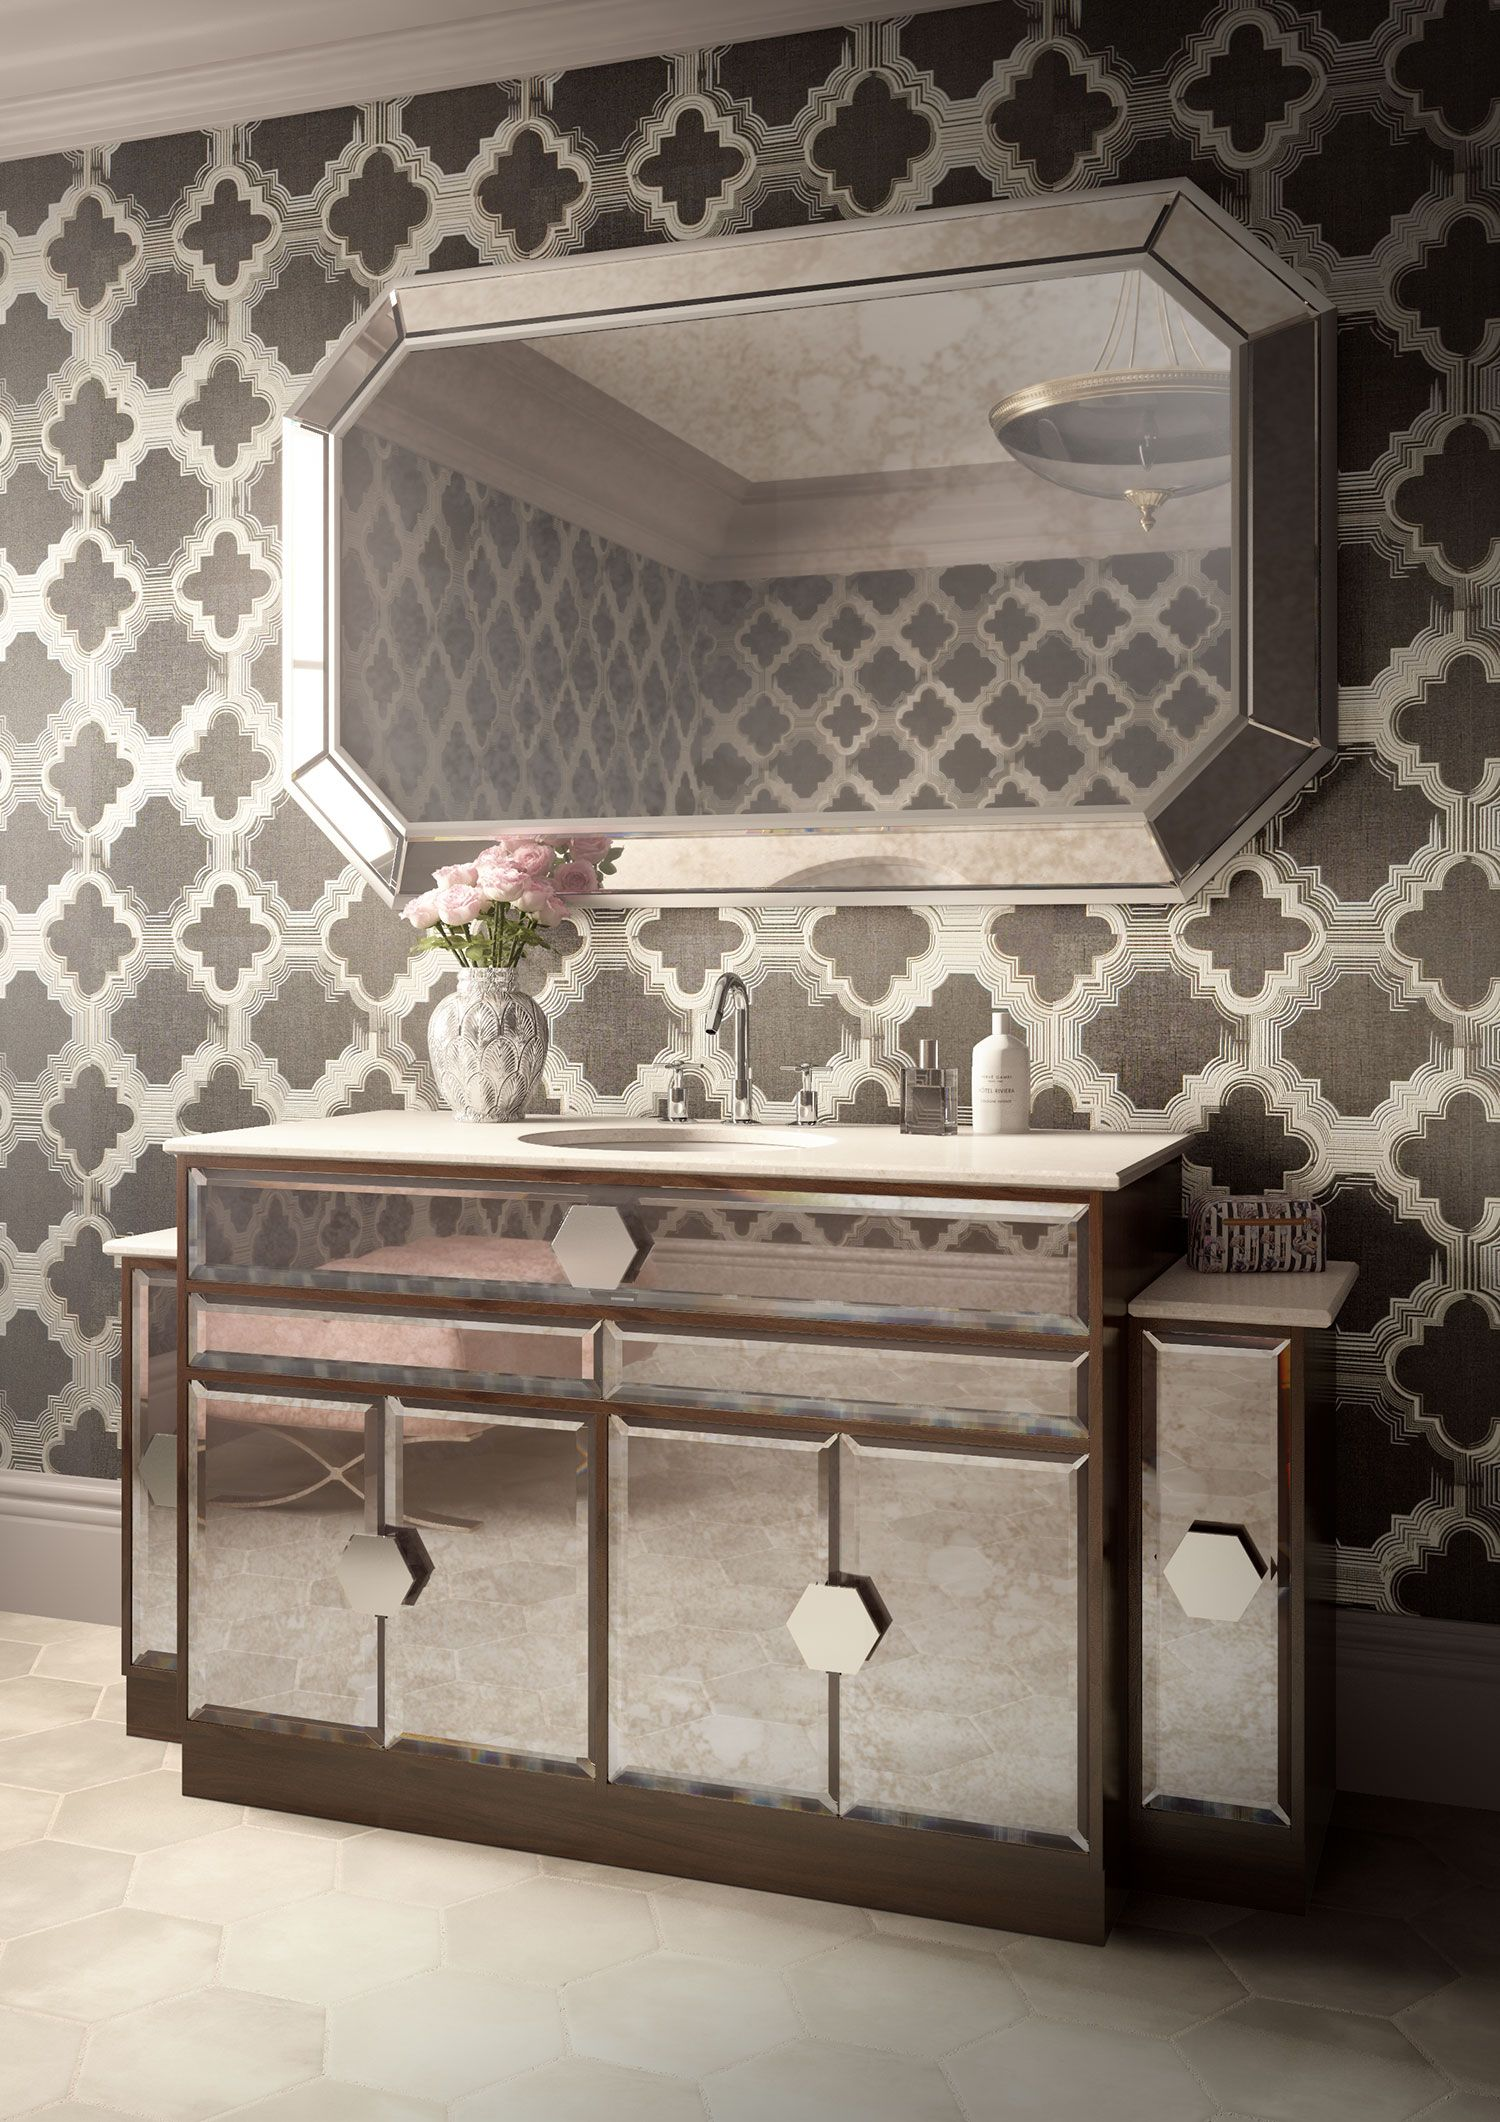 Five unique bathroom vanities make up the JVB collection at C P